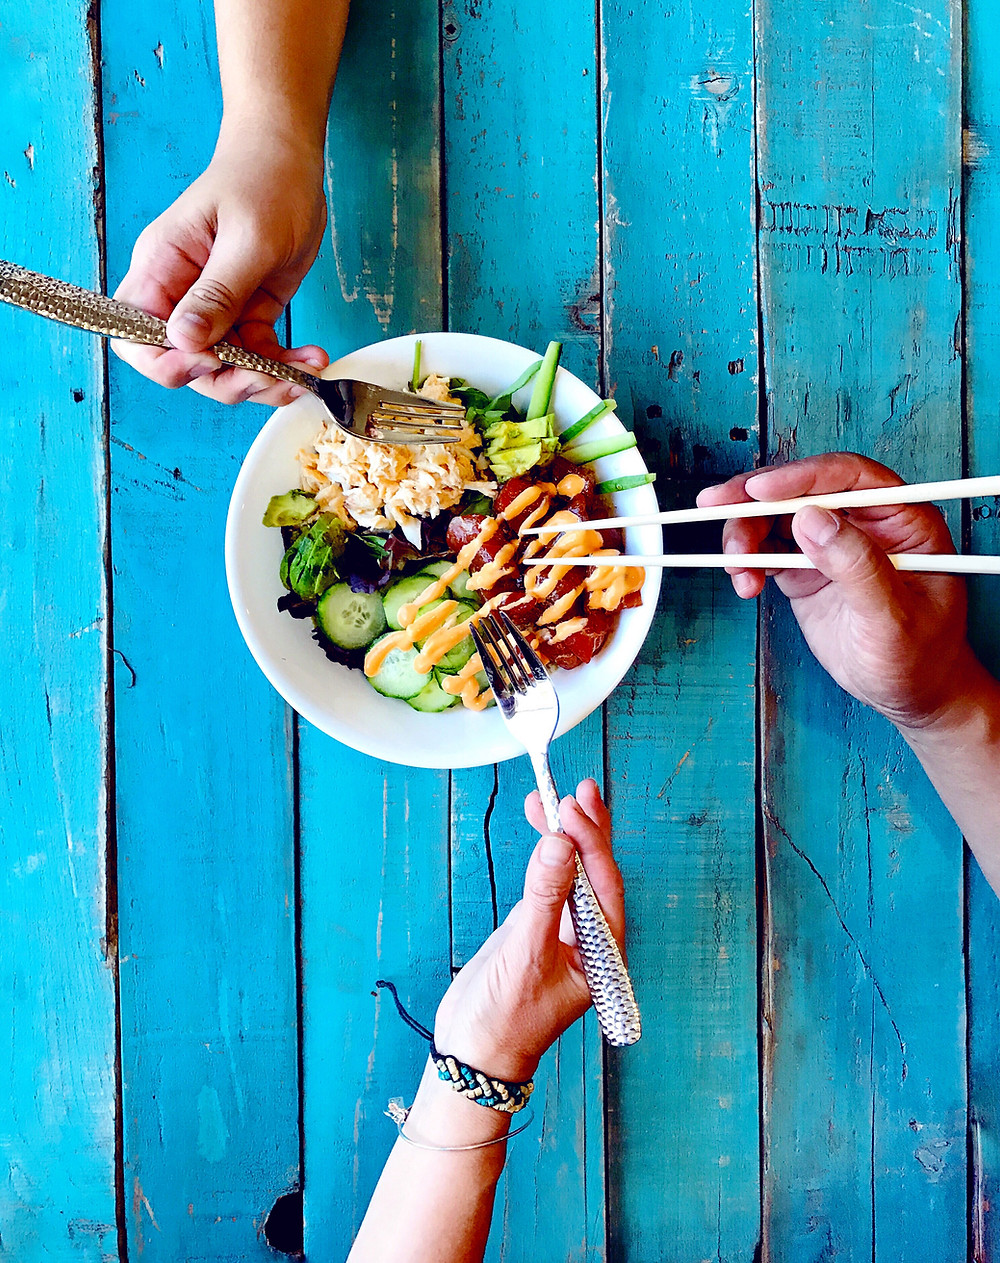 3 hands using chopsticks to eat from a bowl